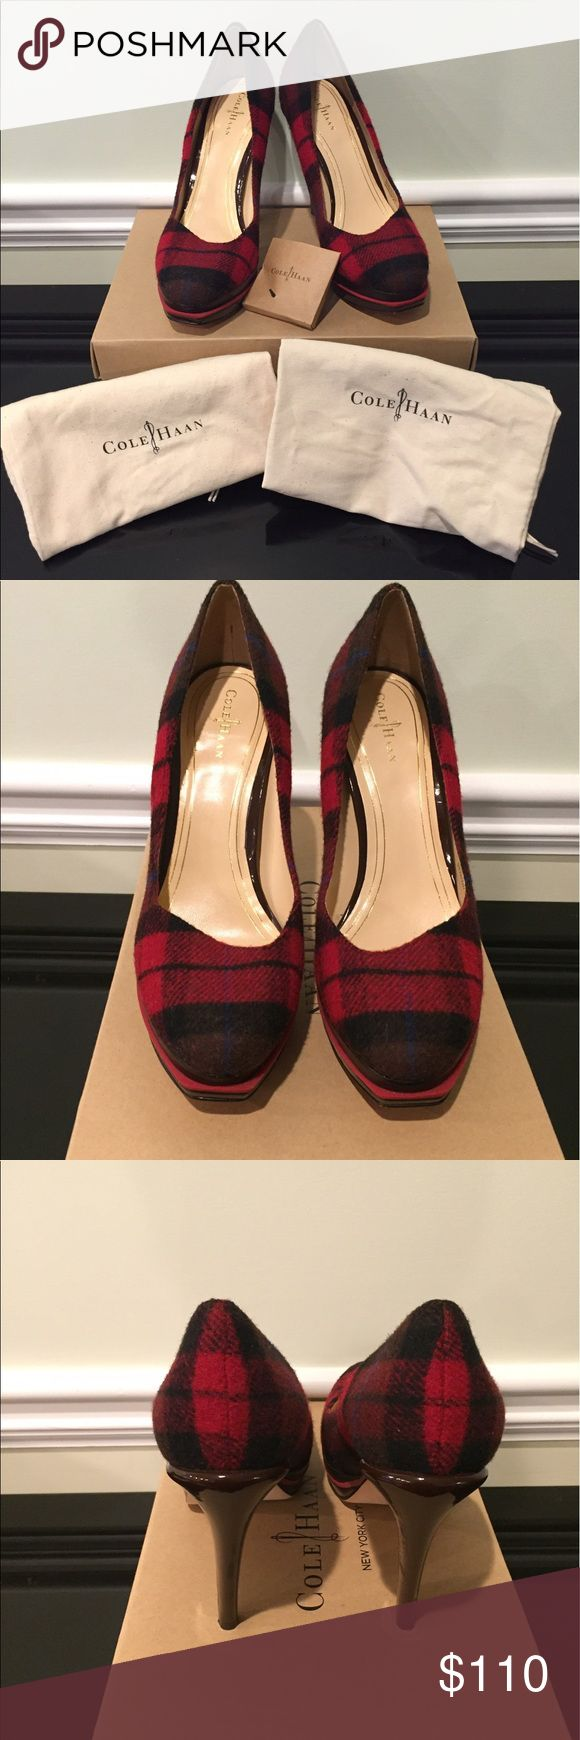 Cole Haan Chelsea Red Plaid pumps. Sz 8.5. EUC! Cole Haan Chelsea Red Plaid pumps. Double platform. Amazing condition. Worn maybe once or twice. Size 8.5. Original box and dustbags included! Cole Haan Shoes Heels